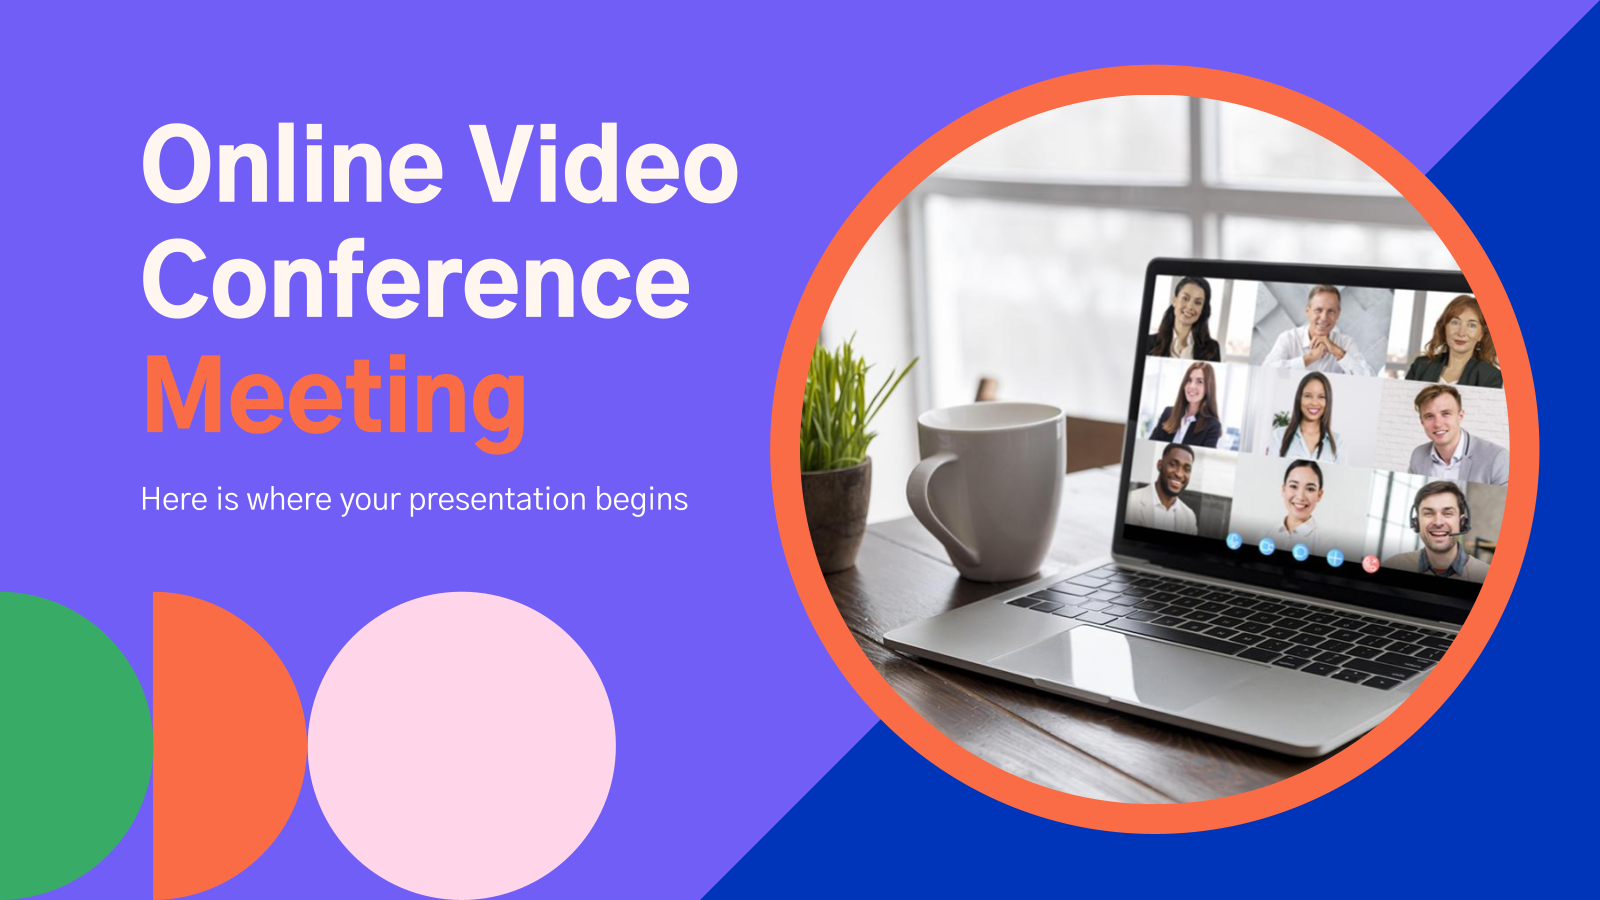 Online Video Conference Meeting presentation template